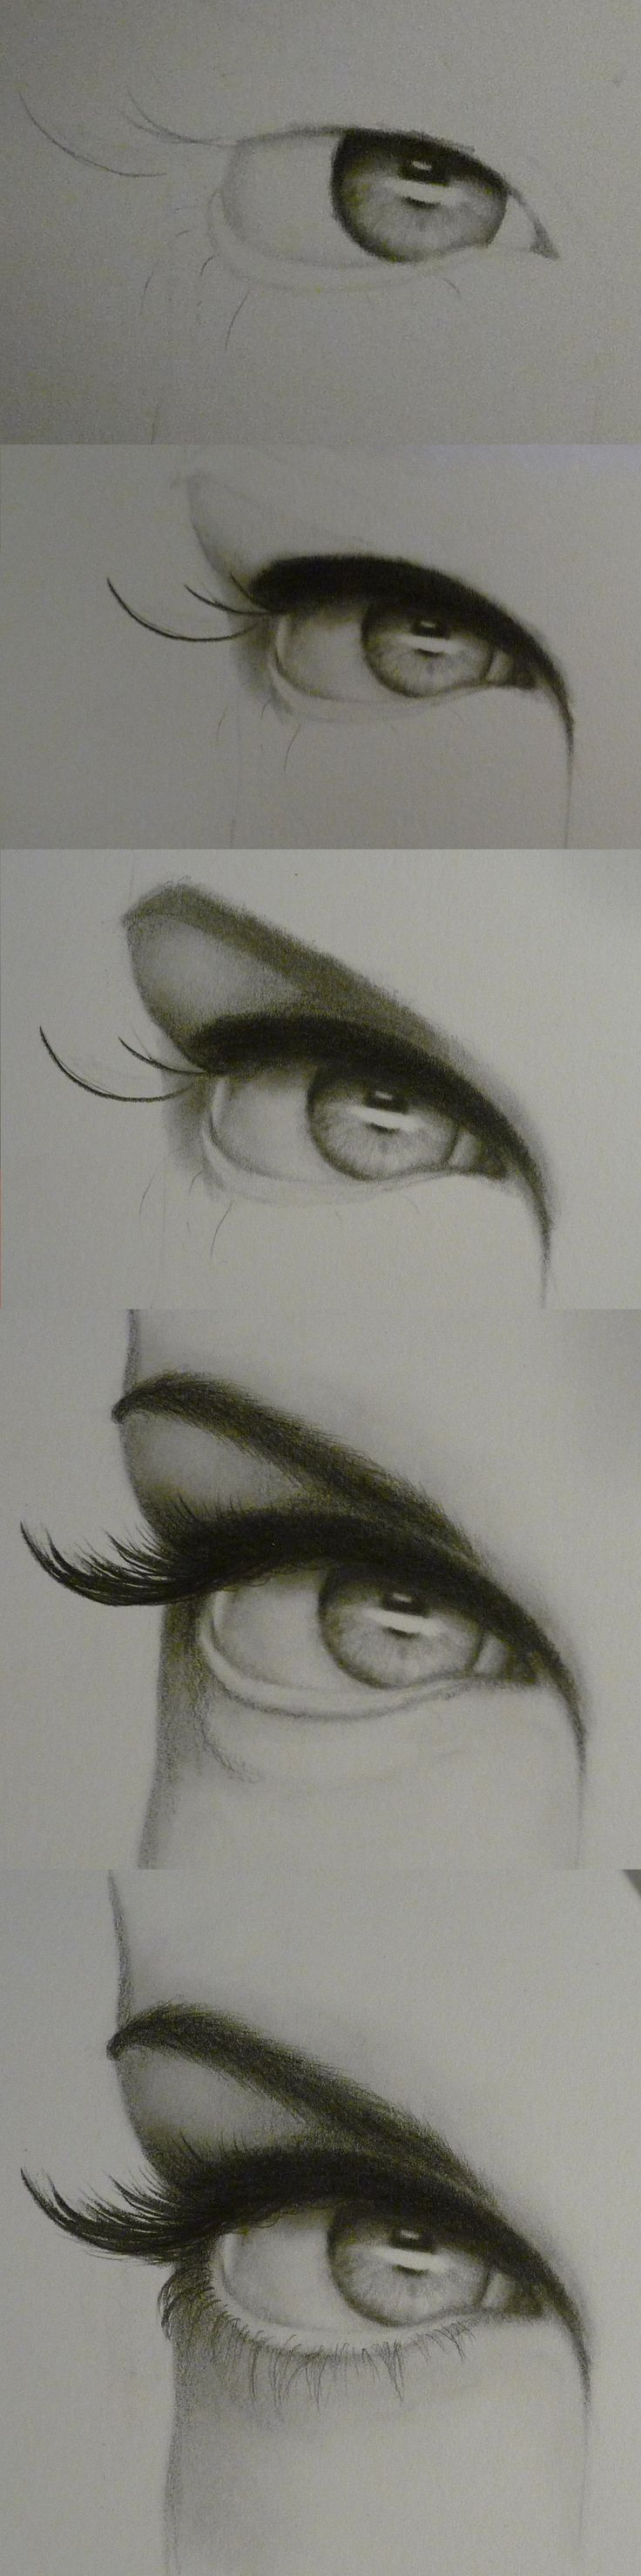 Eye Progression by ~lovedolphins10409 on deviantART Pencil drawings are always so detailed - amazing end result